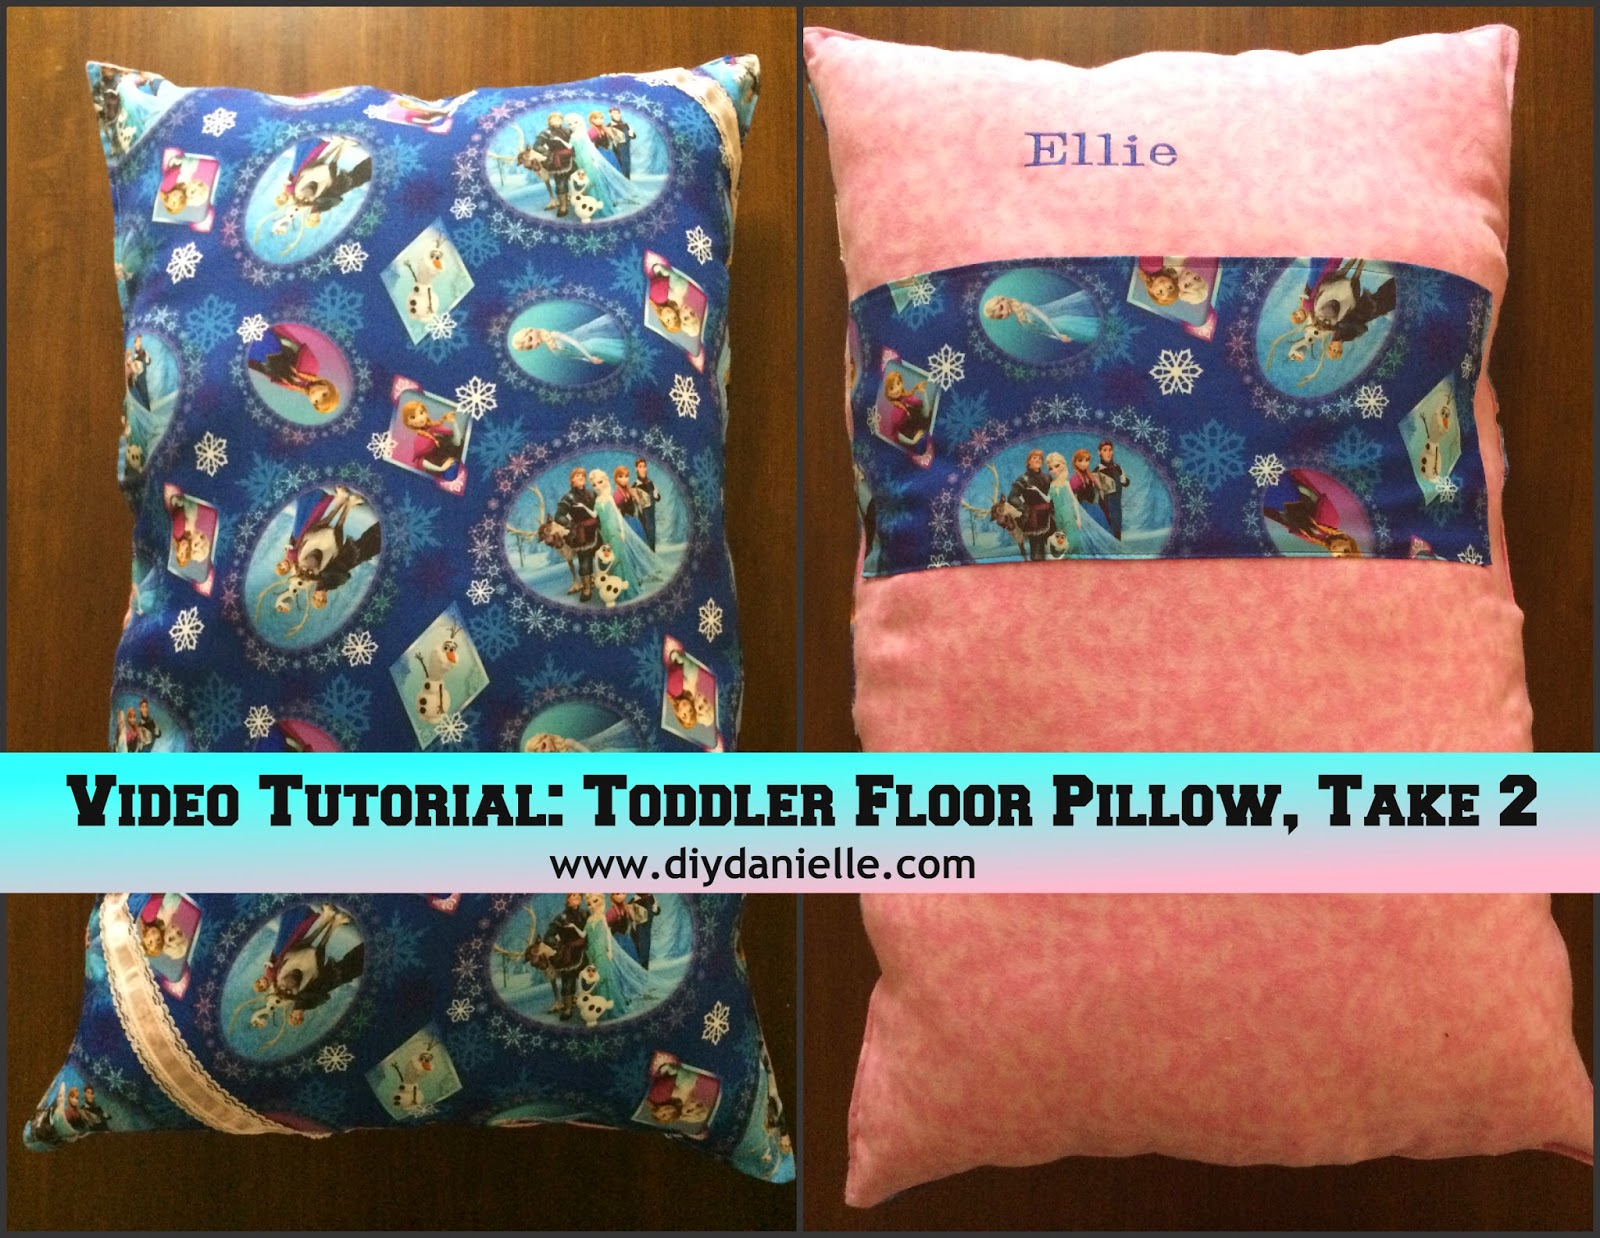 Video tutorial showing how I made this fun Frozen floor pillow as a birthday gift for a 3 year old.